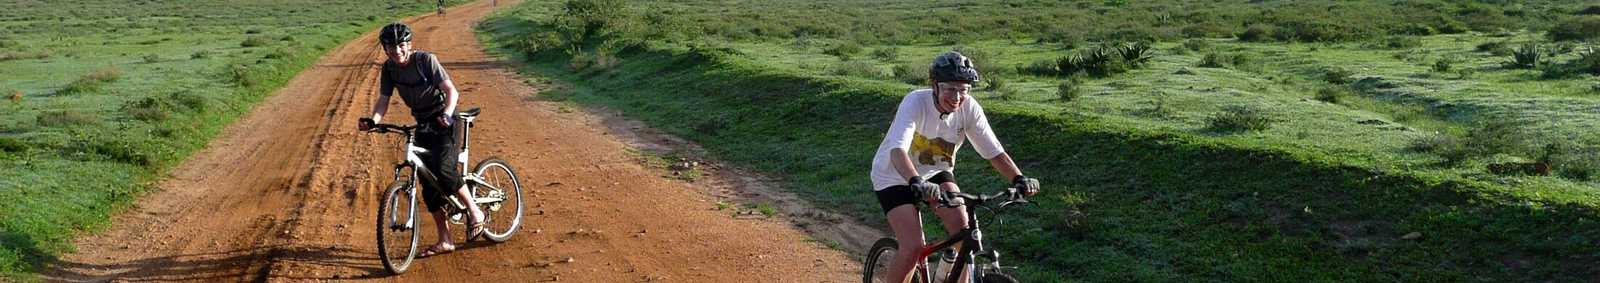 Cycling across the plains